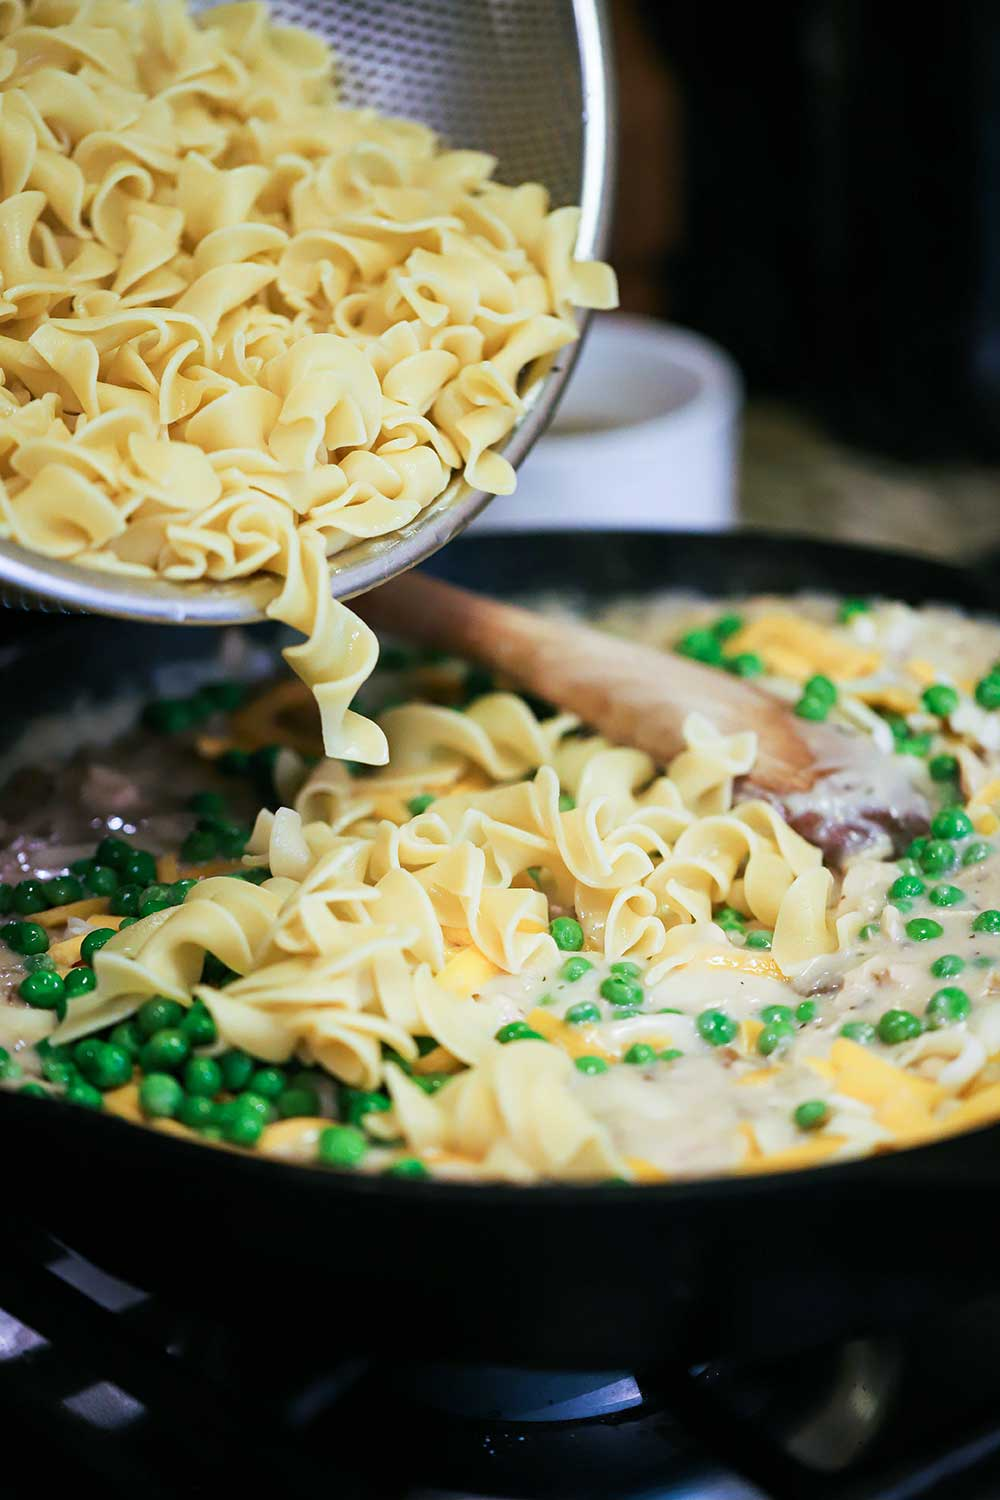 Cooked extra-wide egg noodles being transferred into a large cast-iron skillet filled with cream of mushroom soup, peas, and shredded cheese.